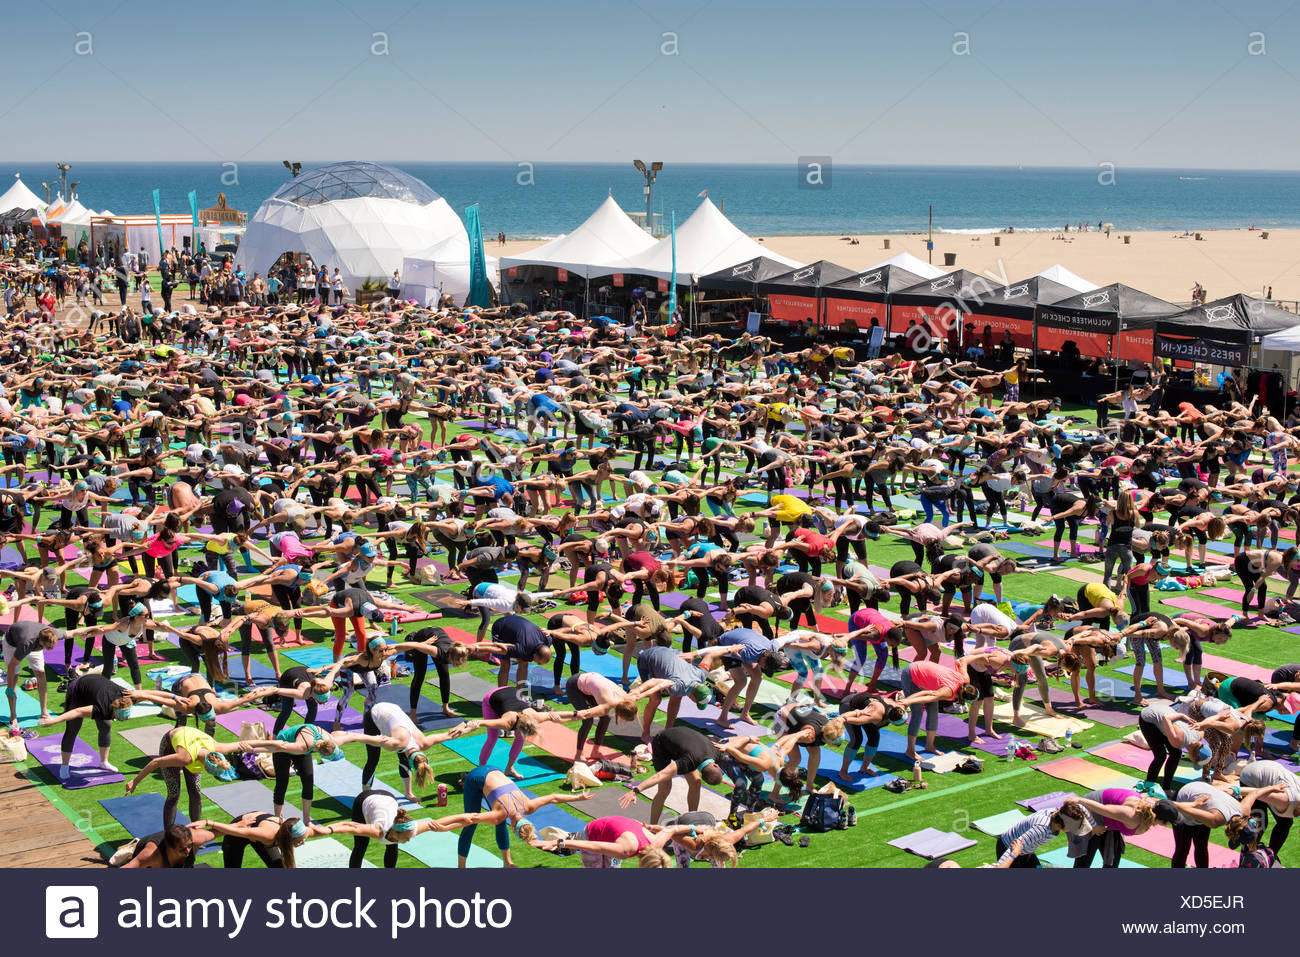 View from above of people stretching during outdoor yoga festival on Santa Monica Pier in Santa Monica, California, USA - Stock Image